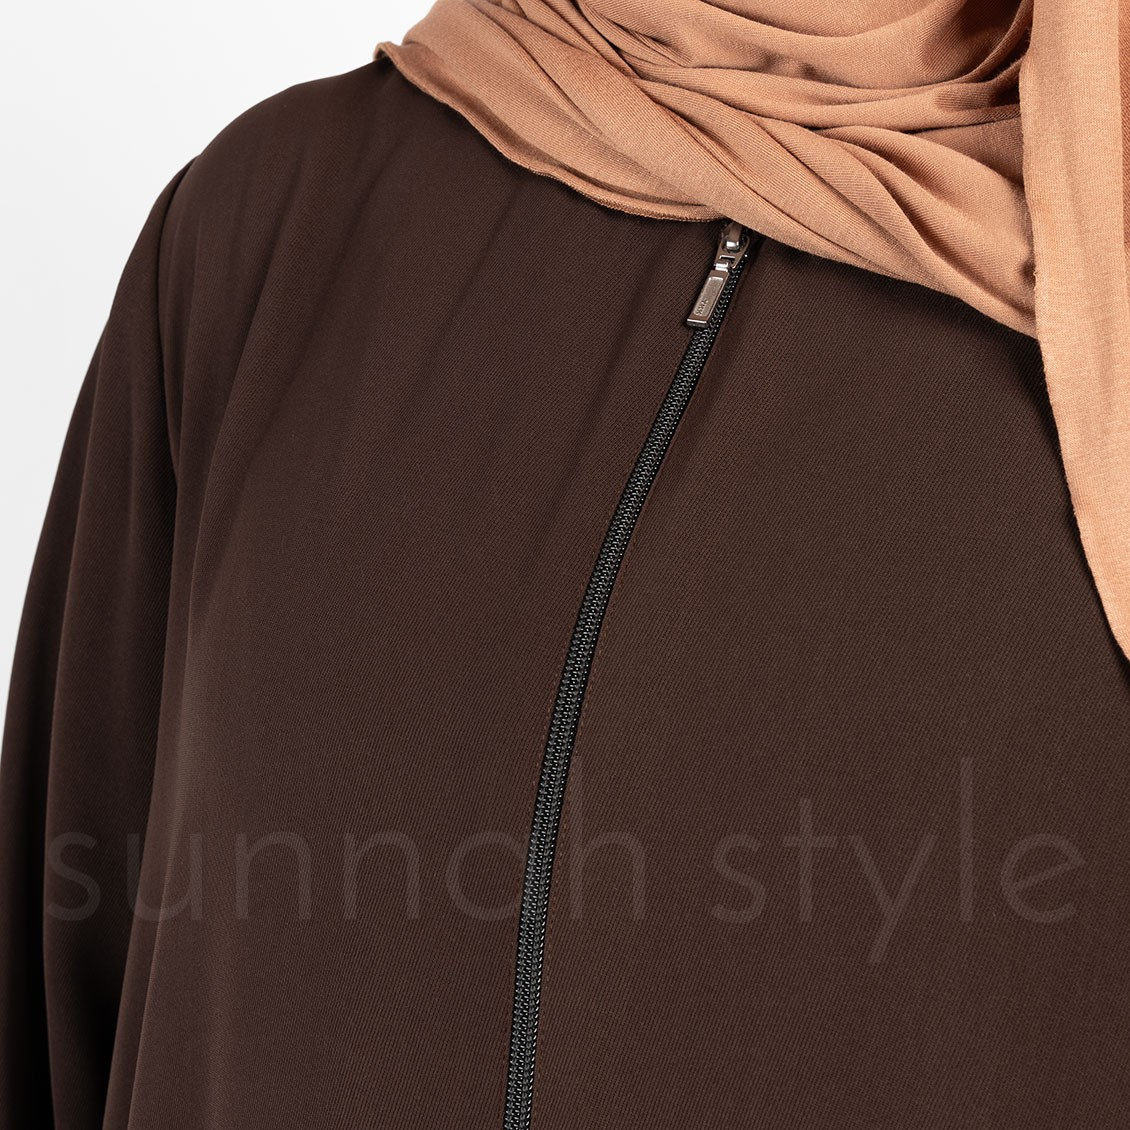 Sunnah Style Essentials Full Zip Abaya Espresso